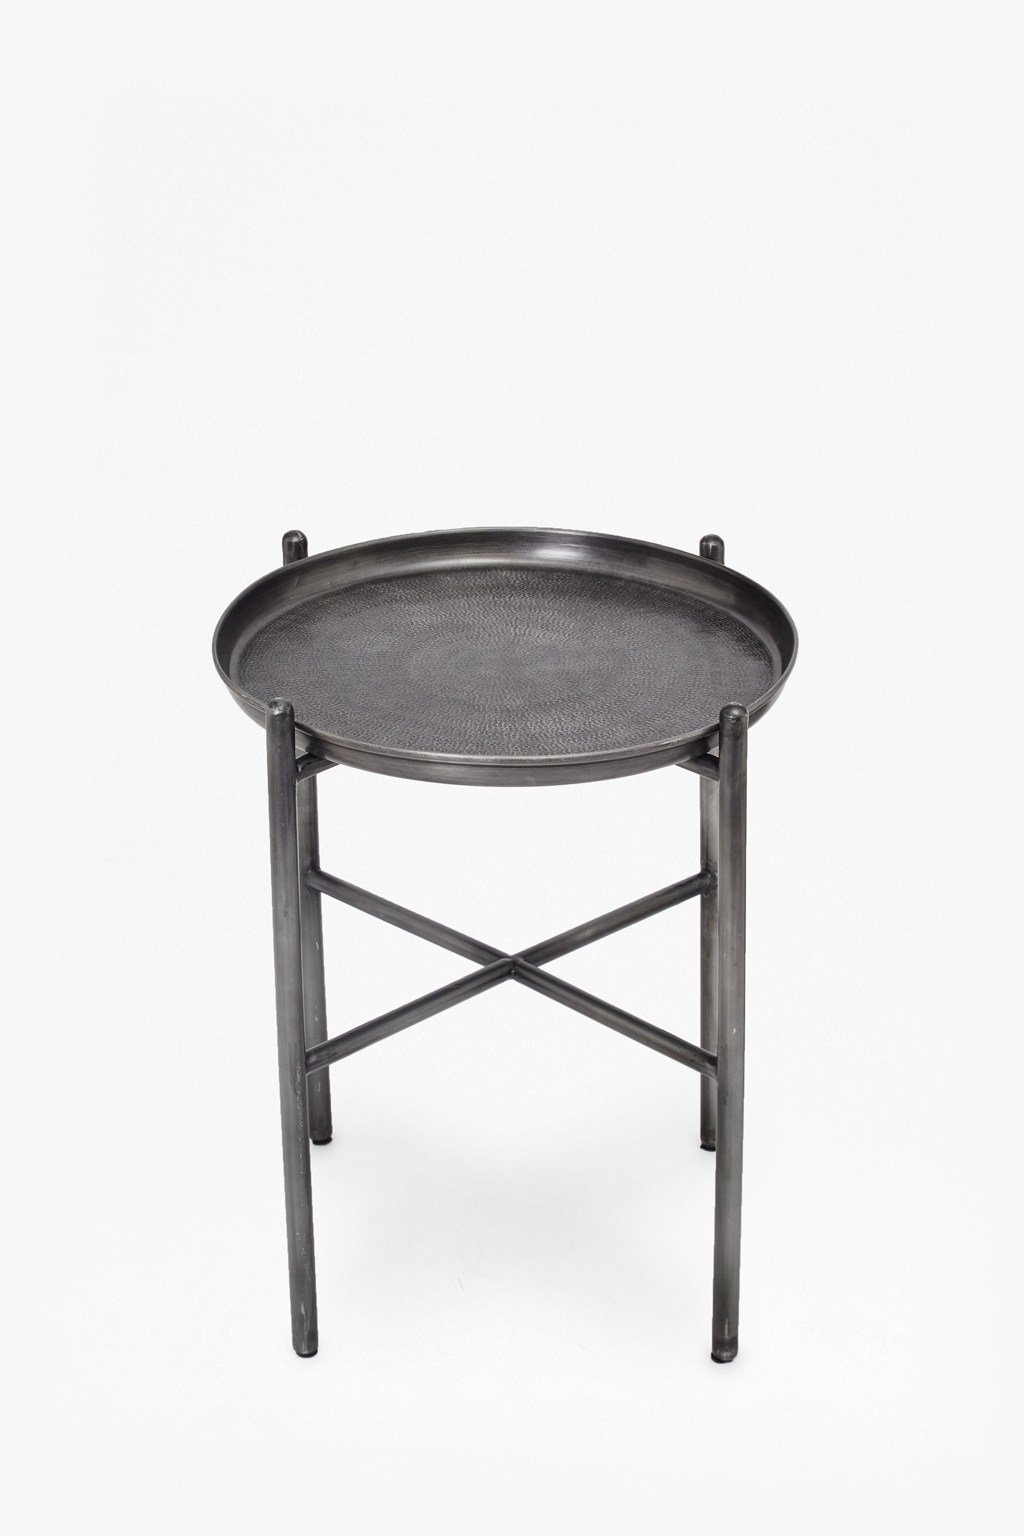 Hammered metal side table loading images